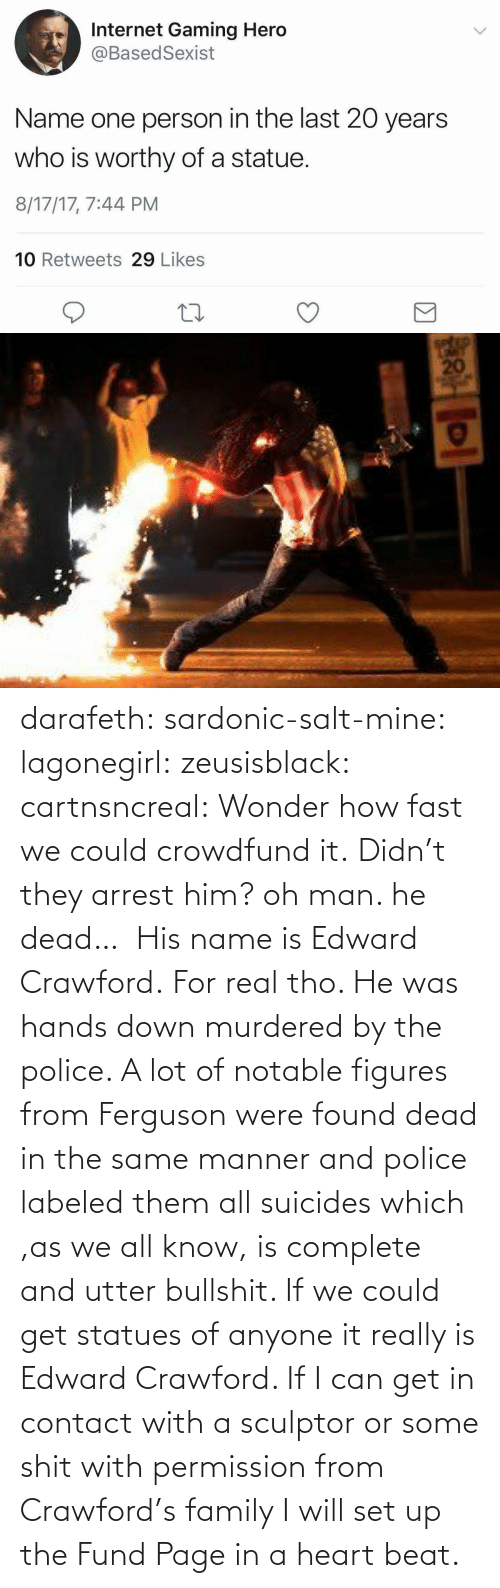 dead: darafeth: sardonic-salt-mine:  lagonegirl:  zeusisblack:  cartnsncreal:   Wonder how fast we could crowdfund it.    Didn't they arrest him?  oh man. he dead…   His name is Edward Crawford.   For real tho. He was hands down murdered by the police. A lot of notable figures from Ferguson were found dead in the same manner and police labeled them all suicides which ,as we all know, is complete and utter bullshit.  If we could get statues of anyone it really is Edward Crawford. If I can get in contact with a sculptor or some shit with permission from Crawford's family I will set up the Fund Page in a heart beat.